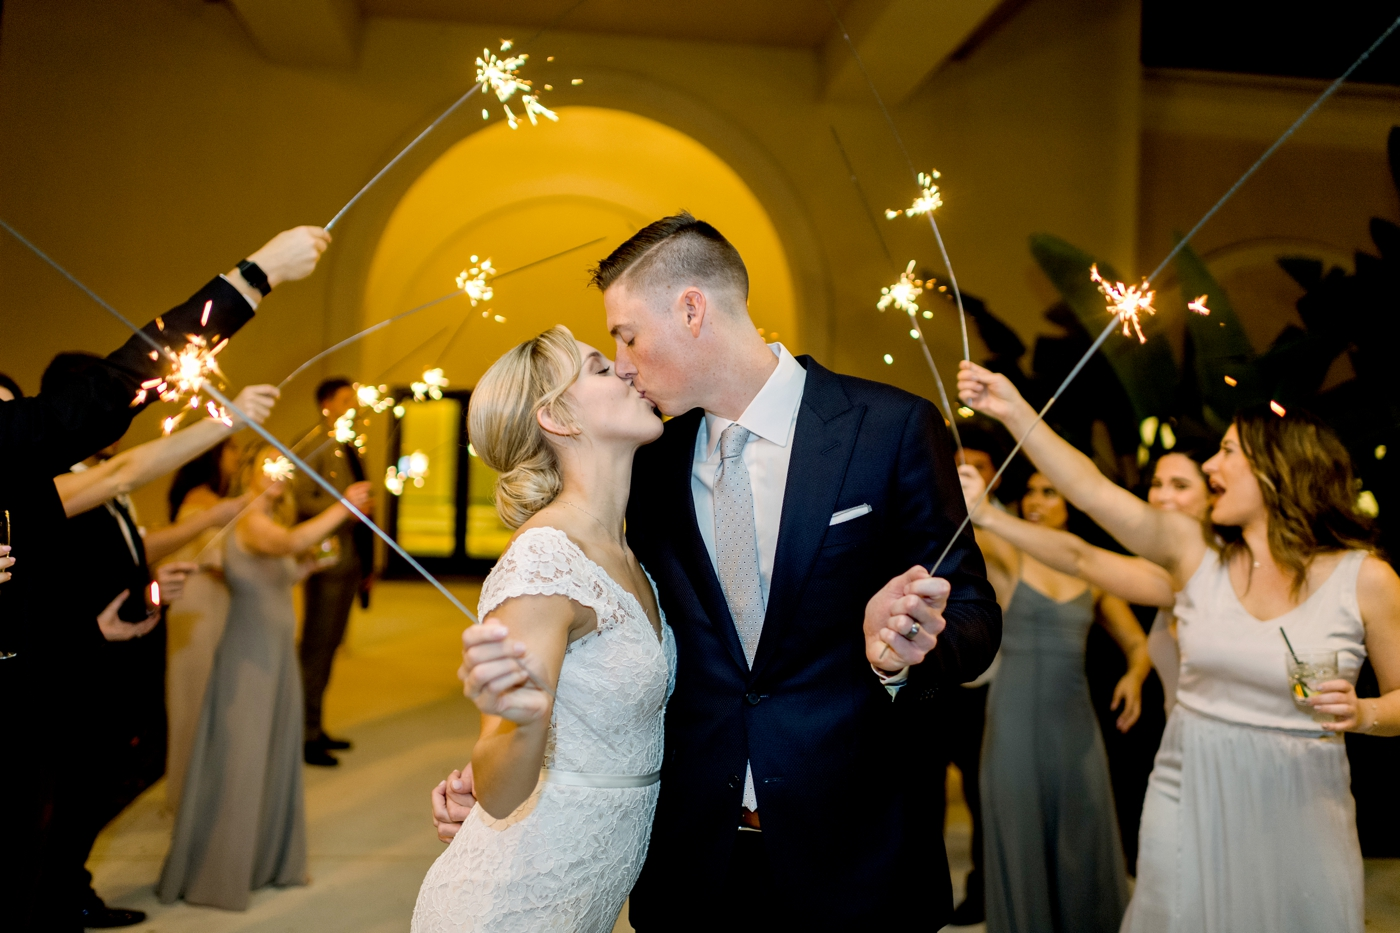 sparkler wedding photography orlando